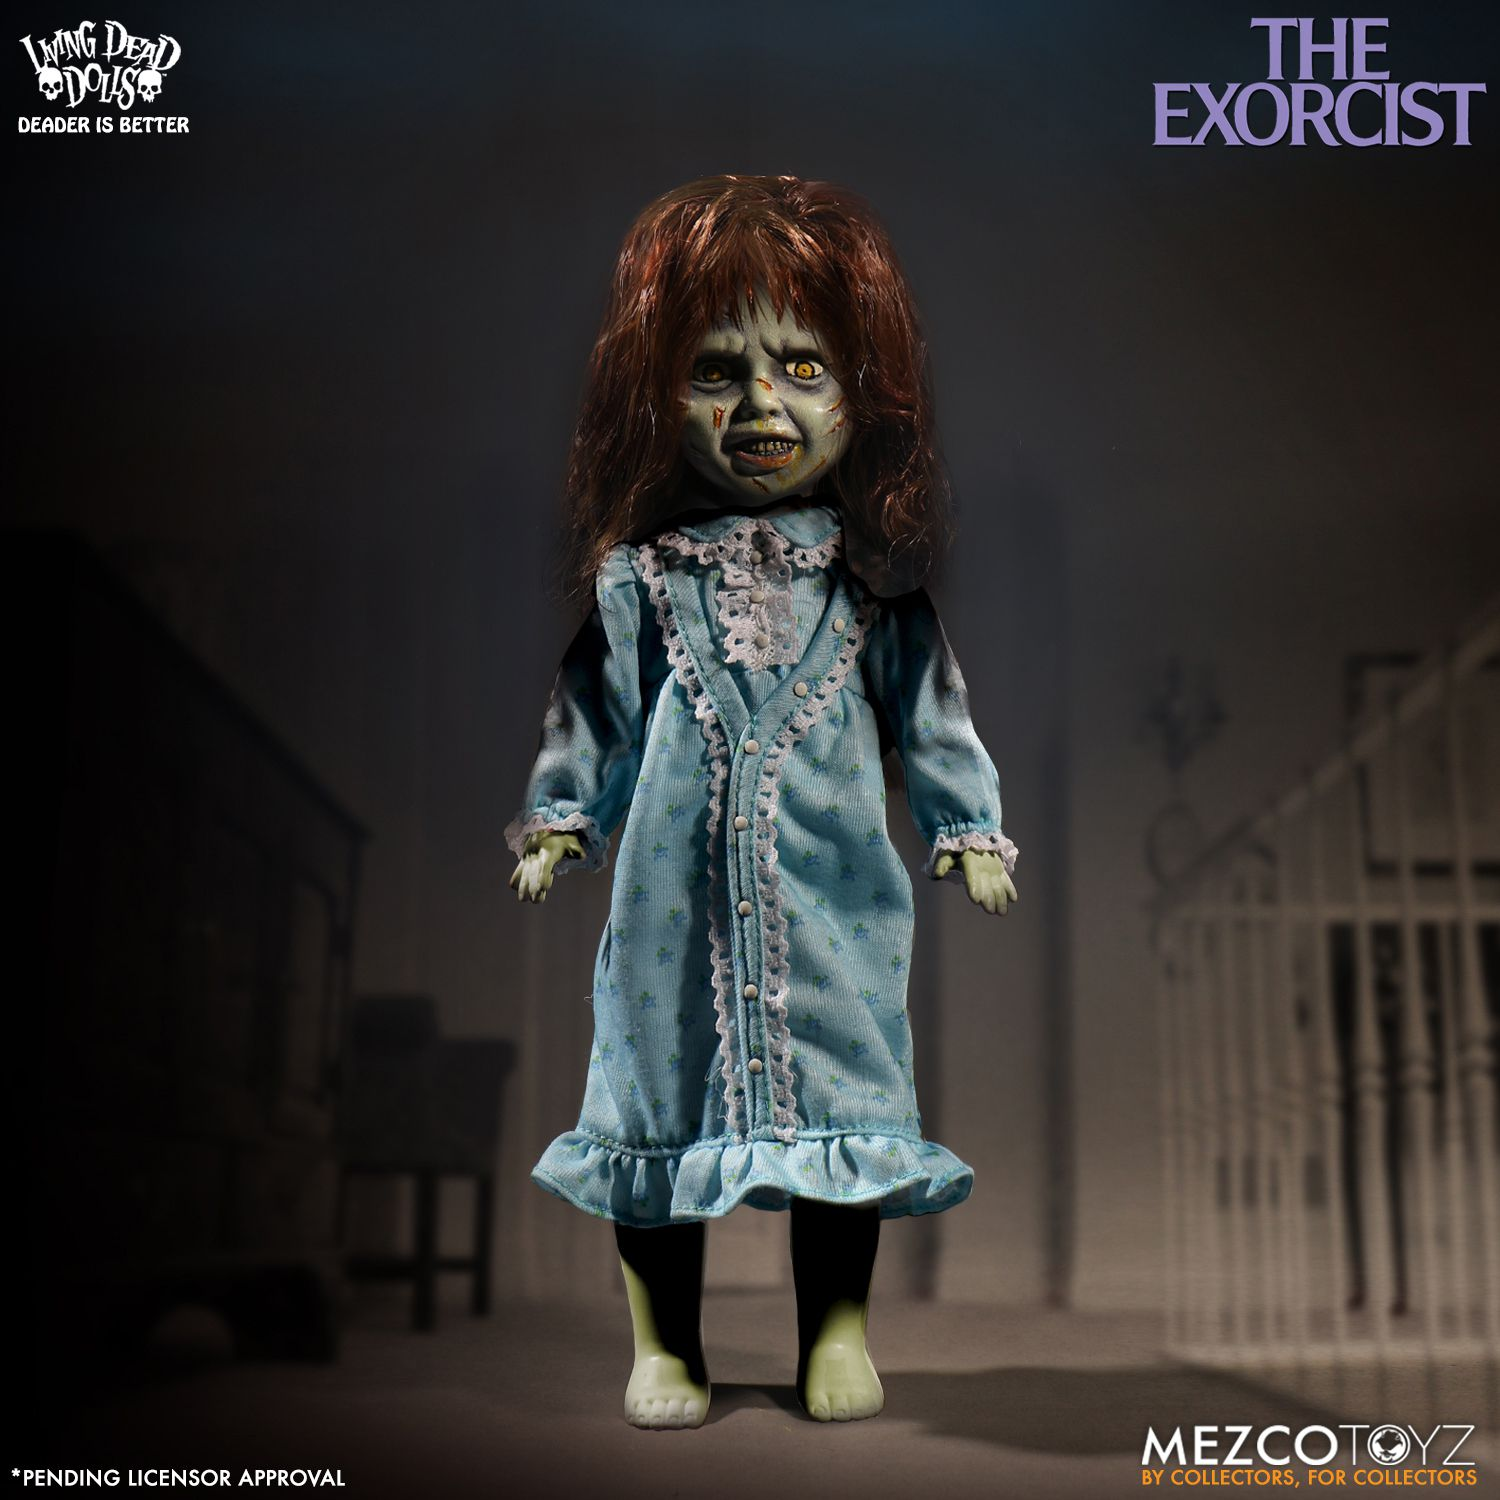 living dead dolls the exorcist mezco toyz